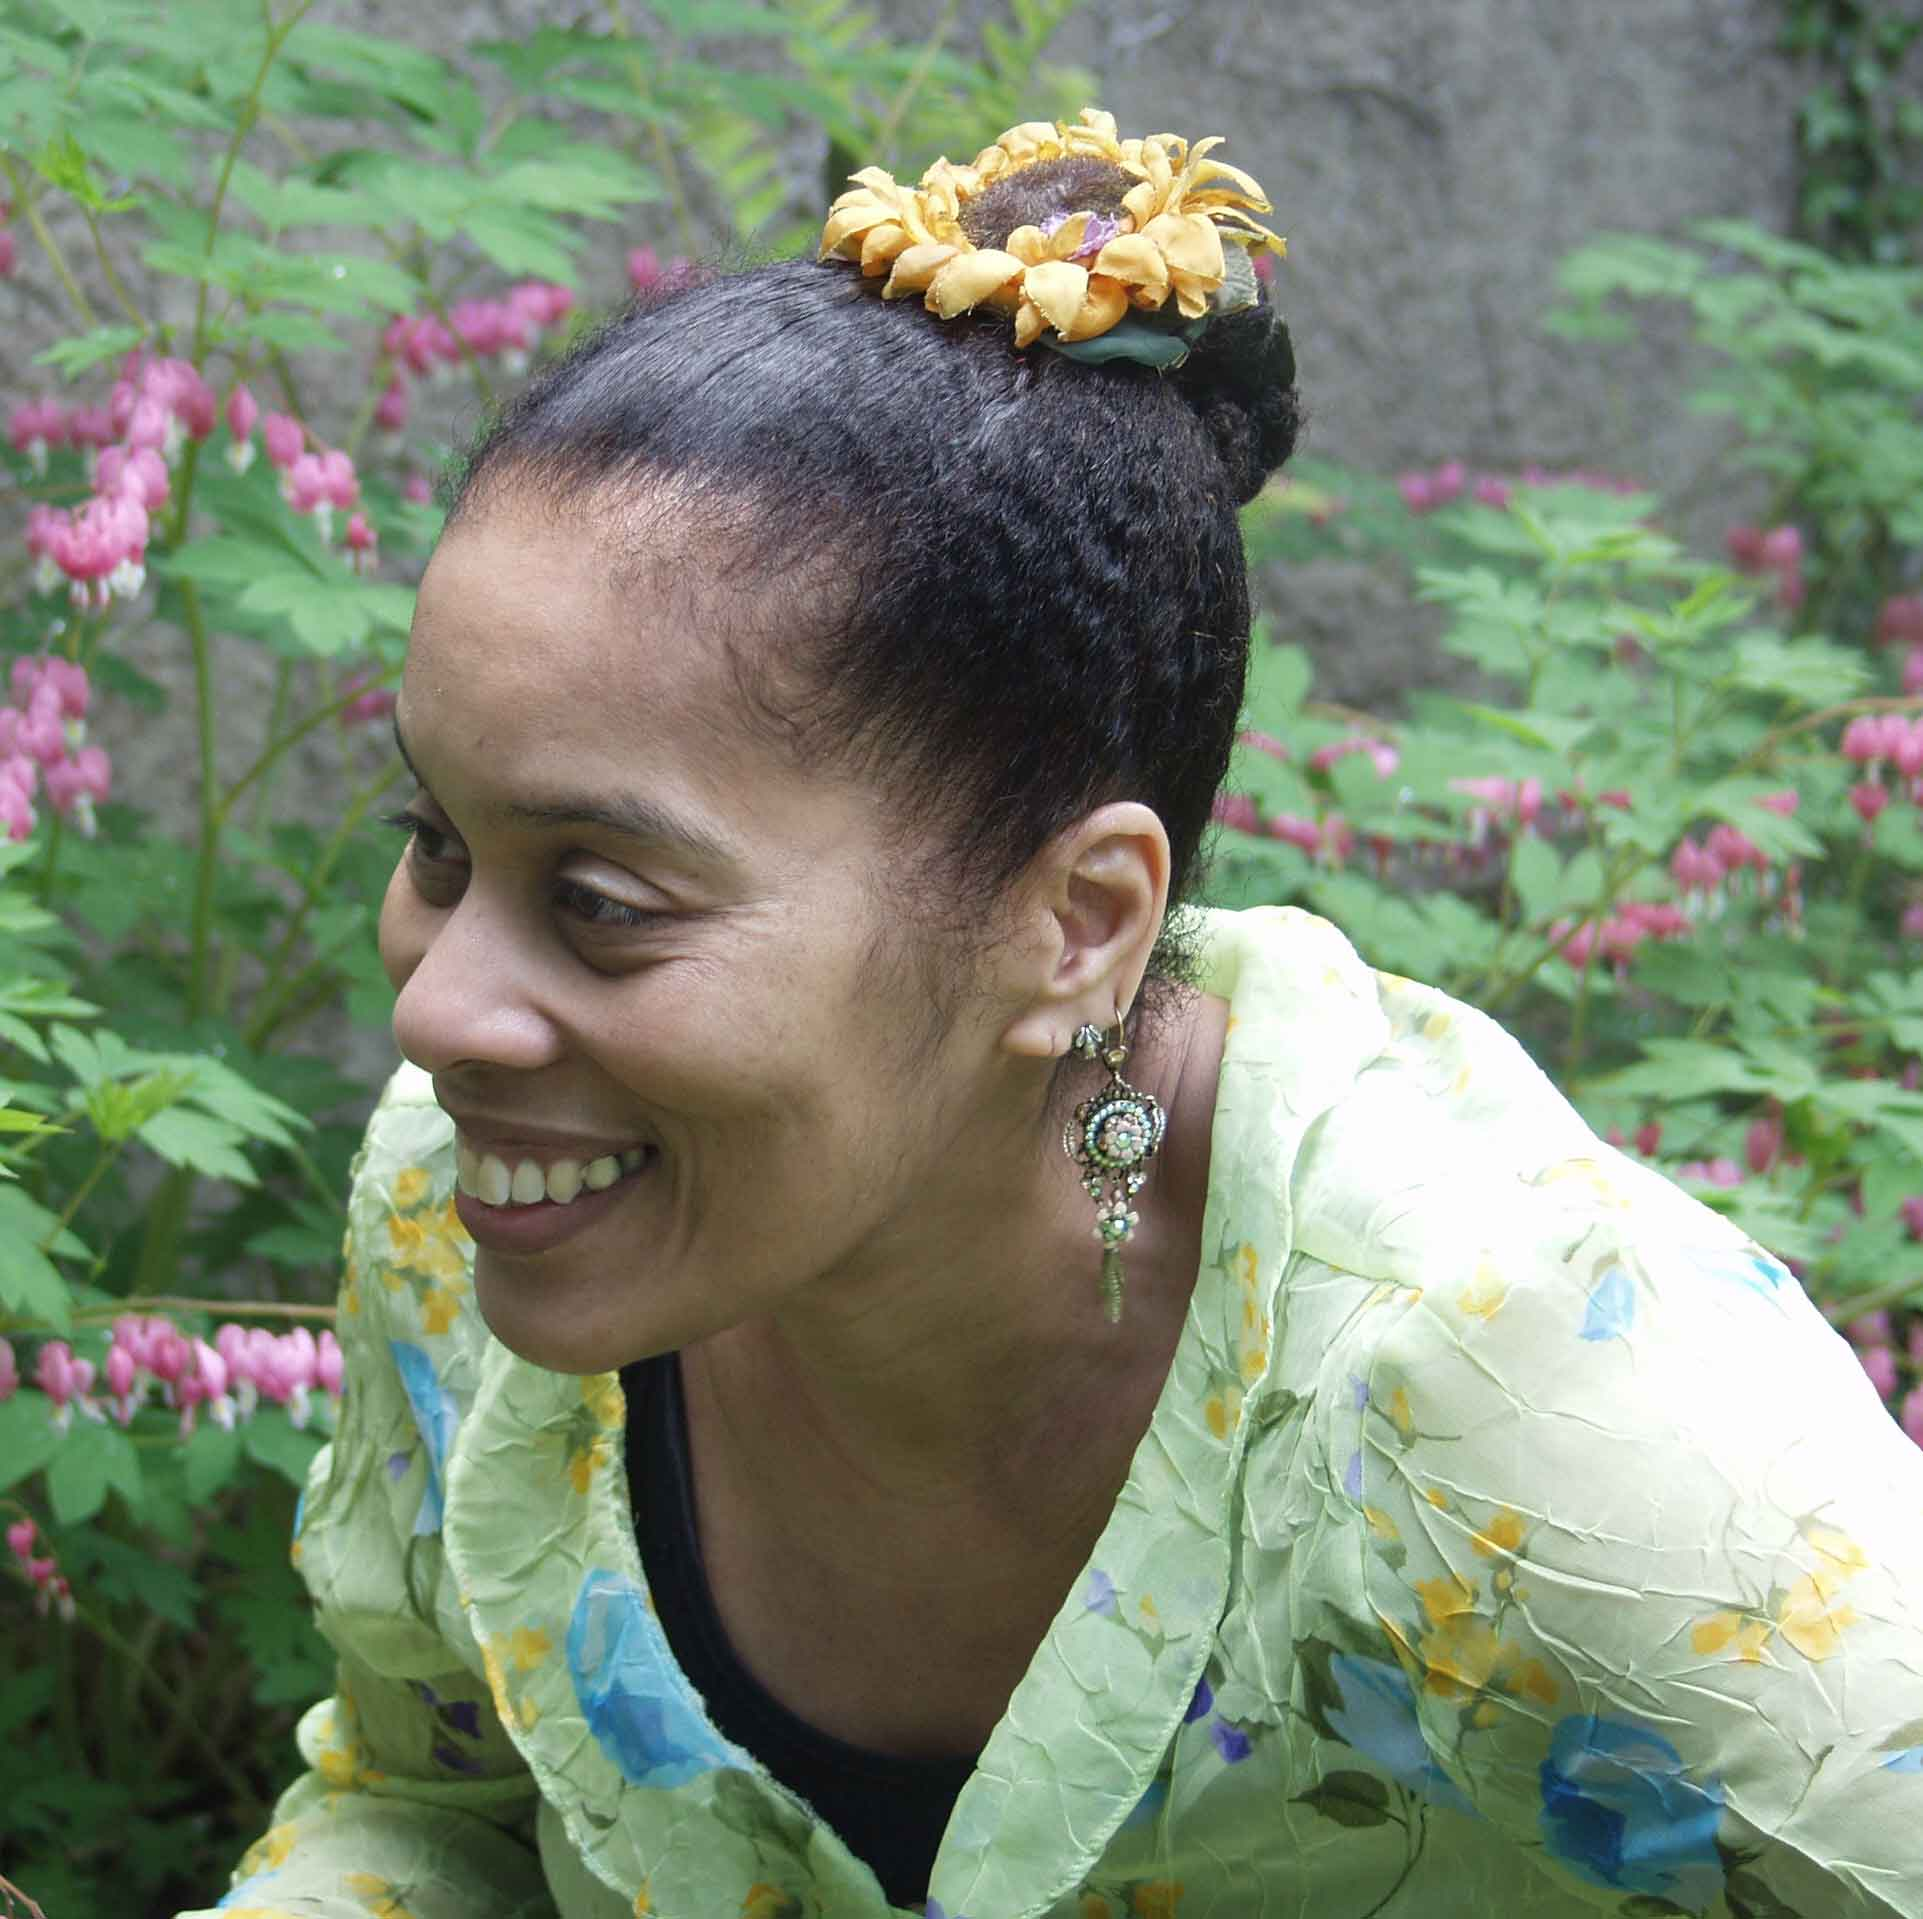 Portrait of Andrea Hairston in a flowery blouse against a leafy background